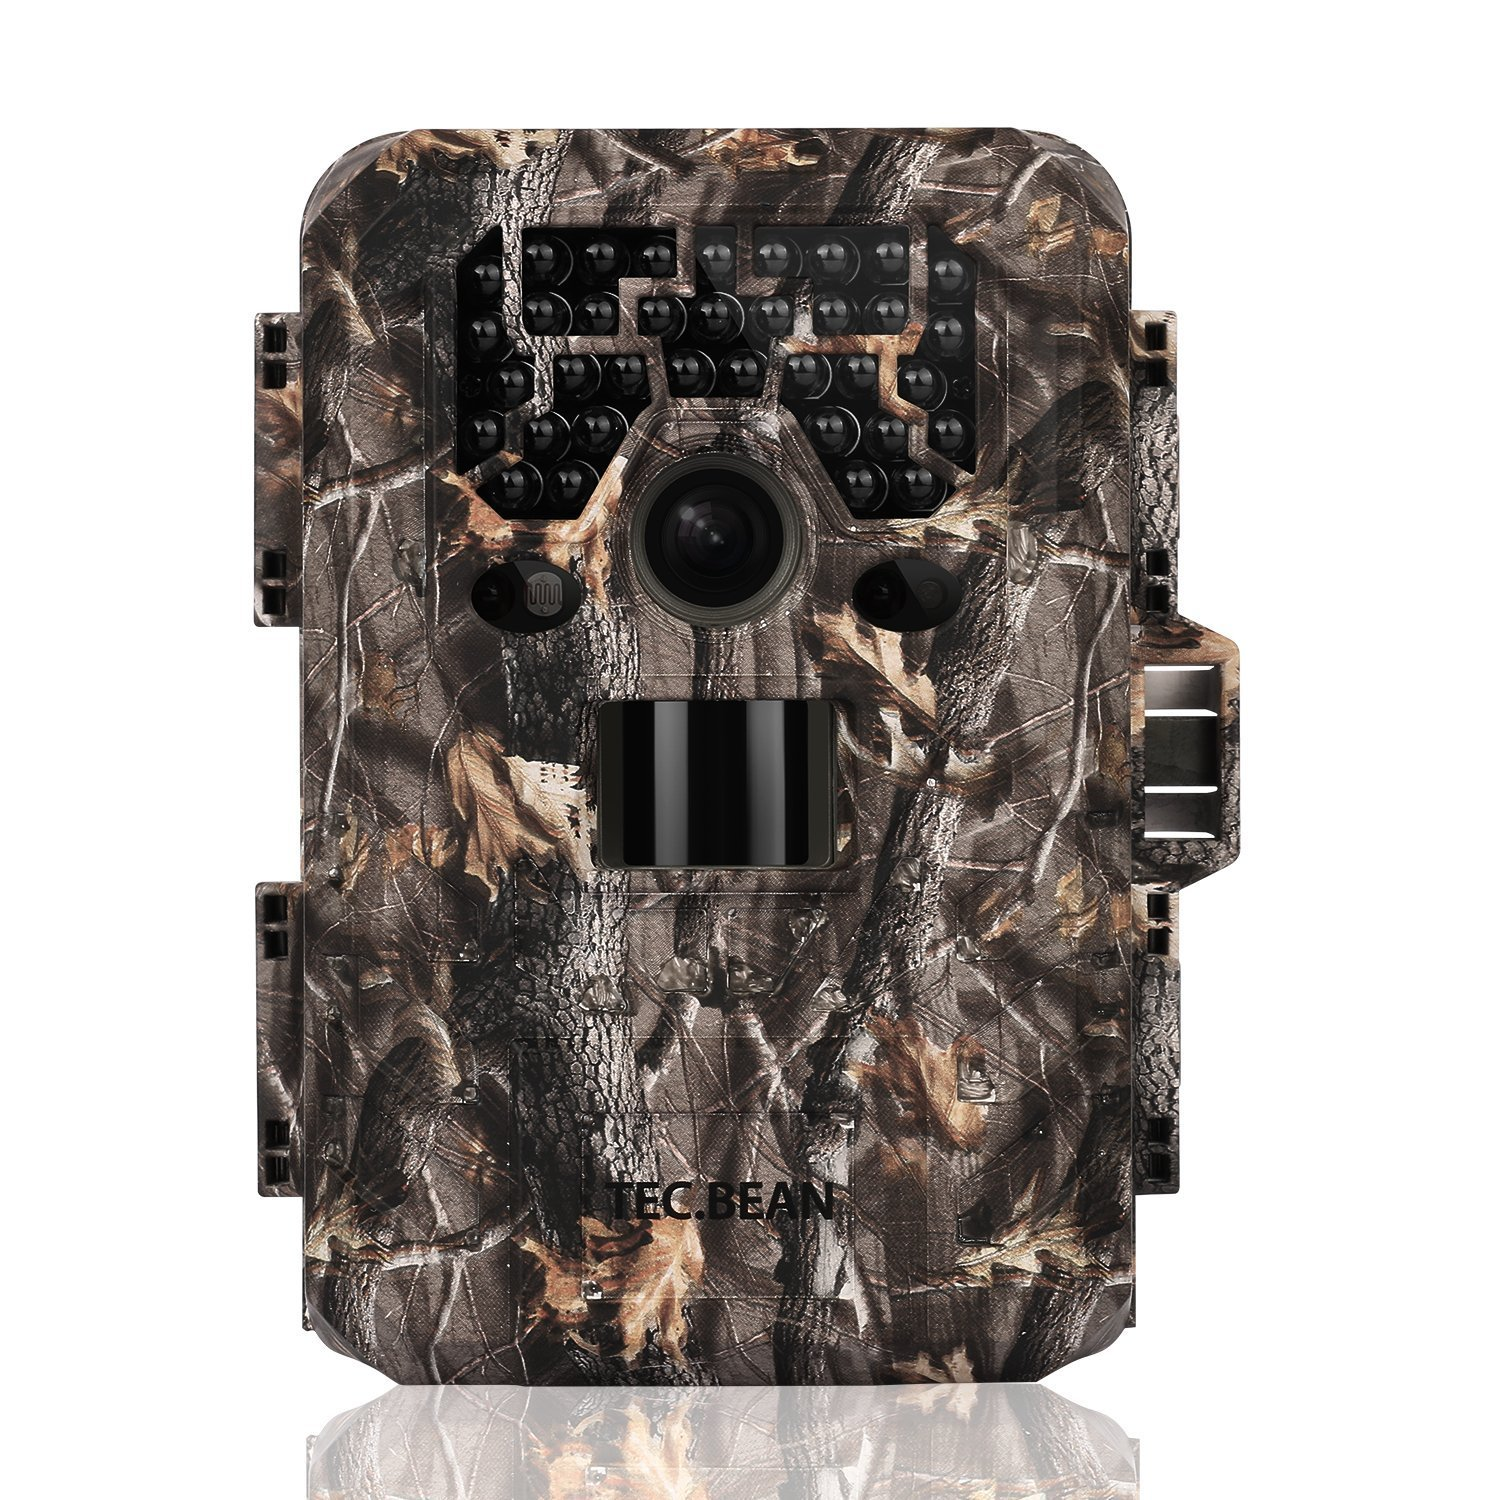 Amazon.com : TEC.BEAN Trail Camera 12MP 1080P Full HD Game ...